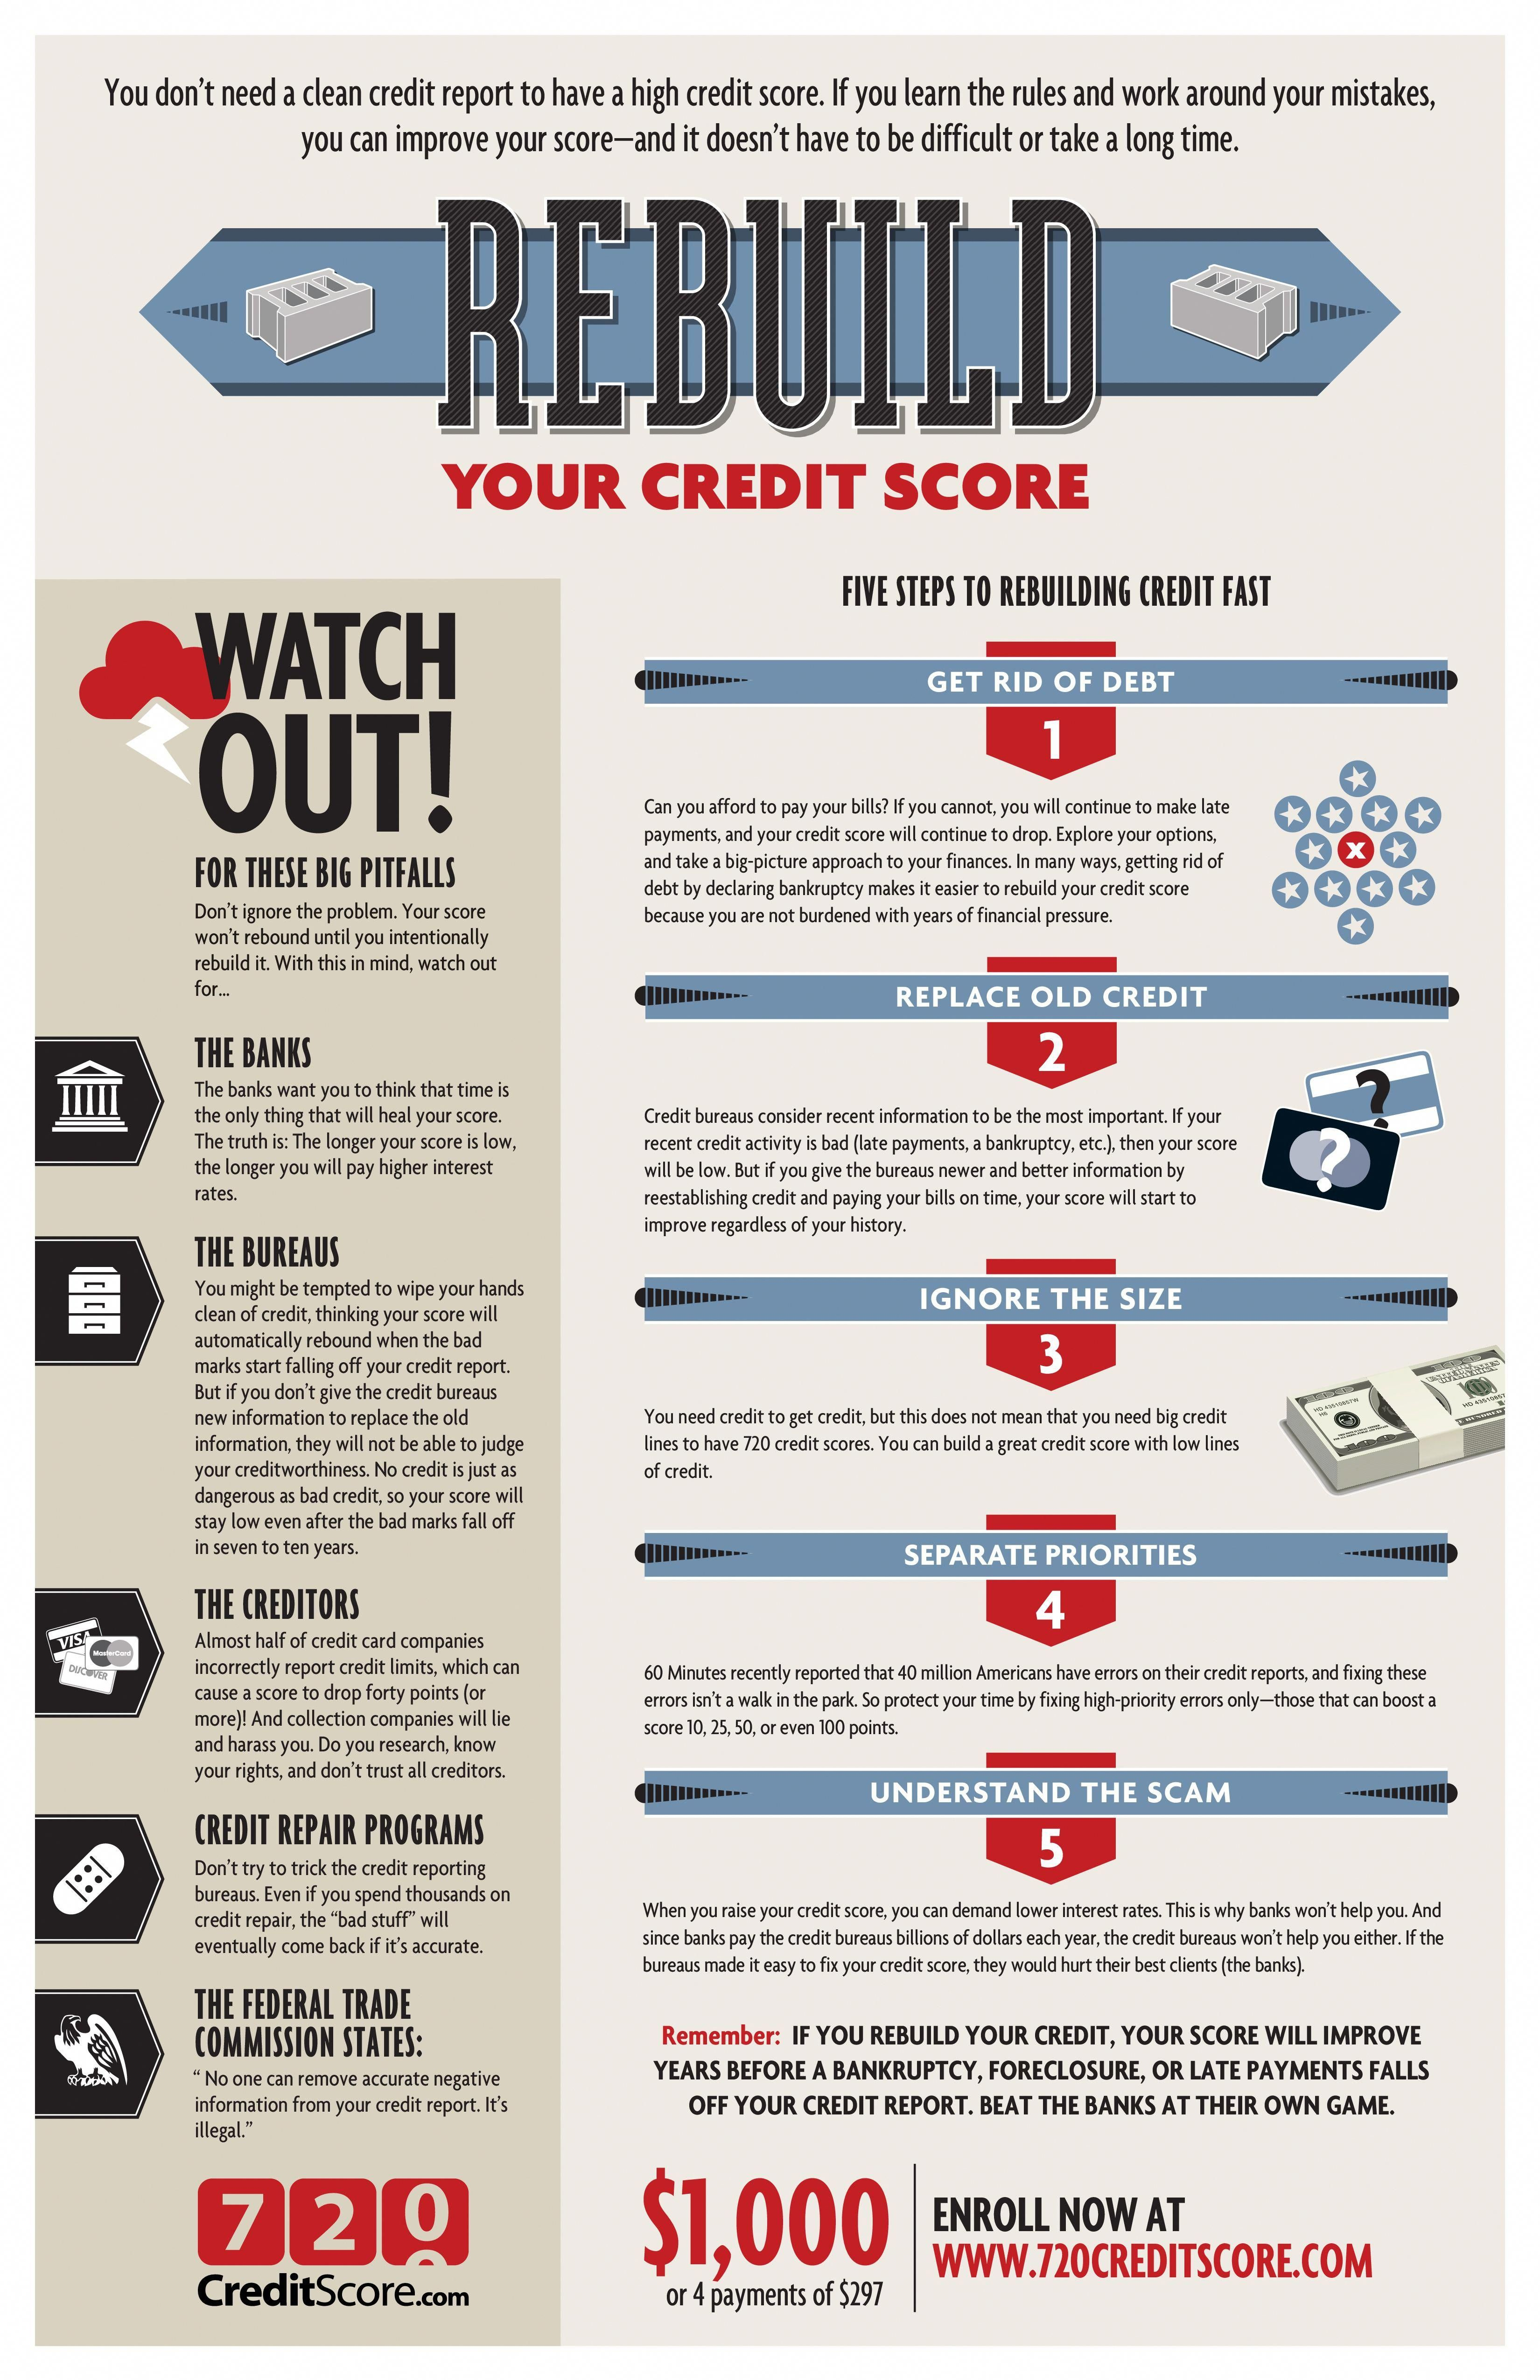 Got To Maintain Good Credit Here S A List With Images